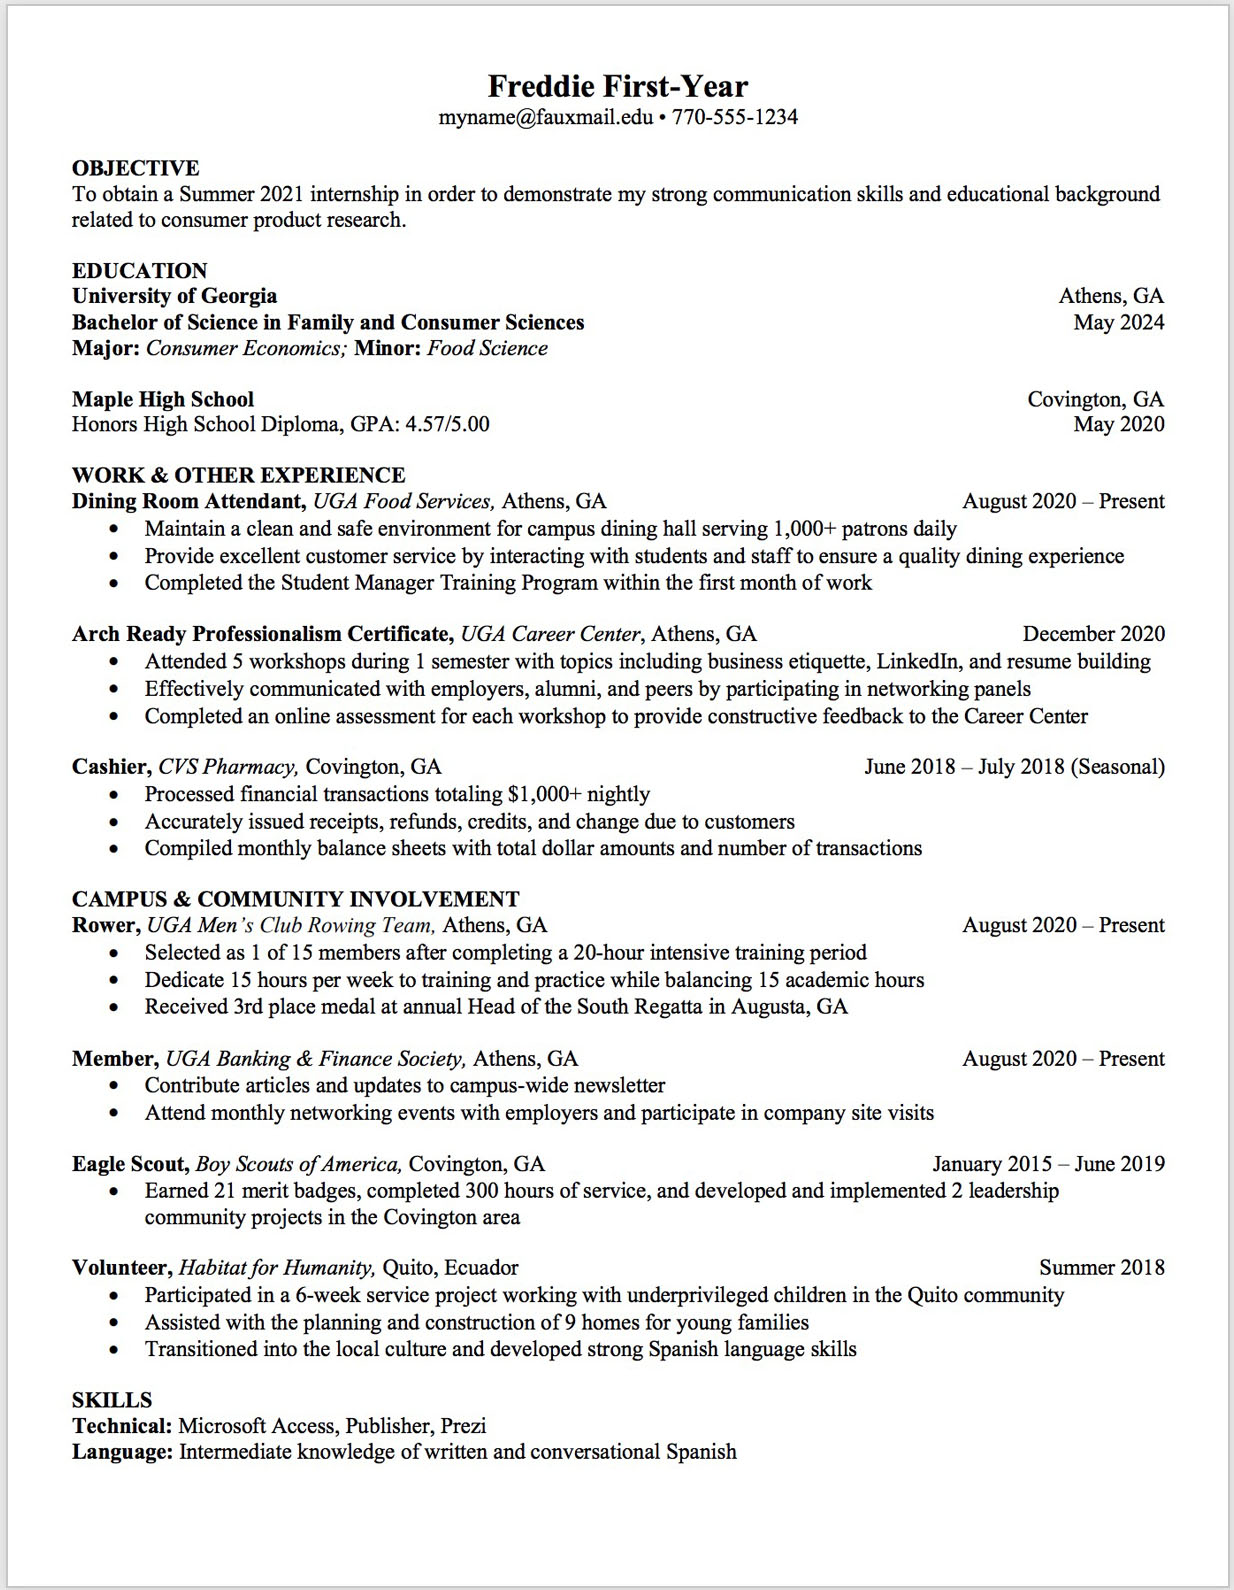 First year resume template